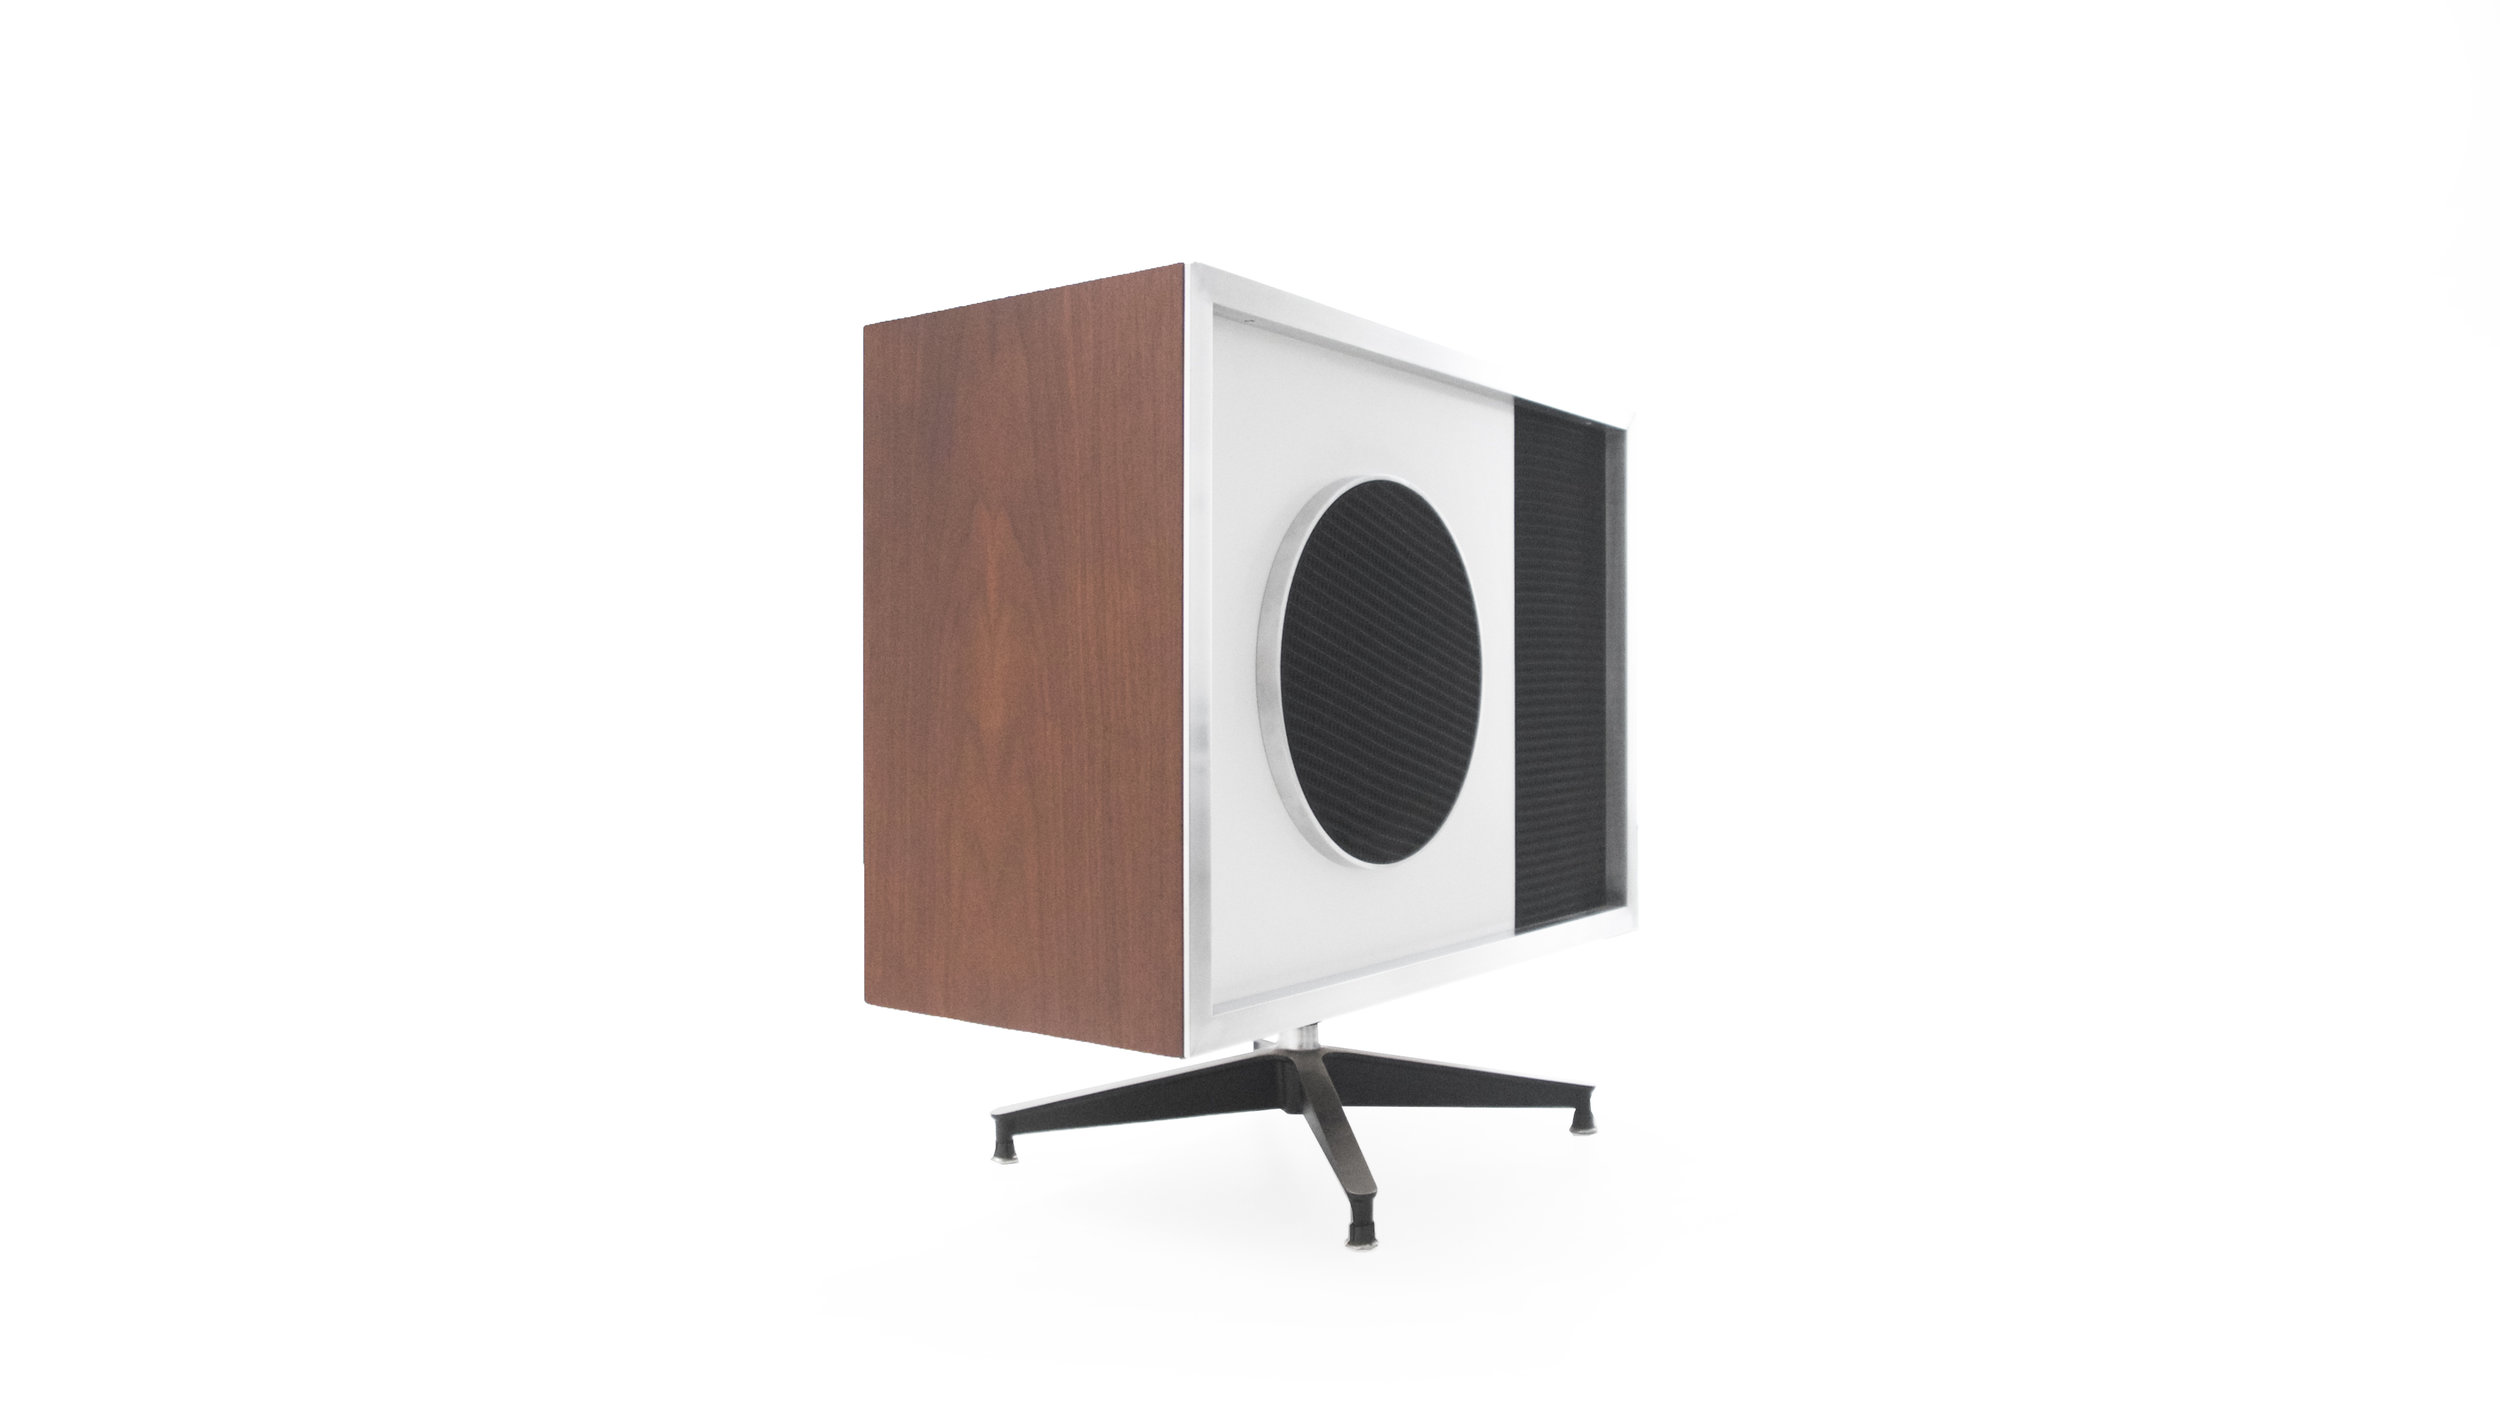 7. Charles and Ray Eames, EAMES Speaker, 1956, lacquered wood, laminate, polished and enameled aluminum, 28.5H x 30W x 13.5D inches.jpg